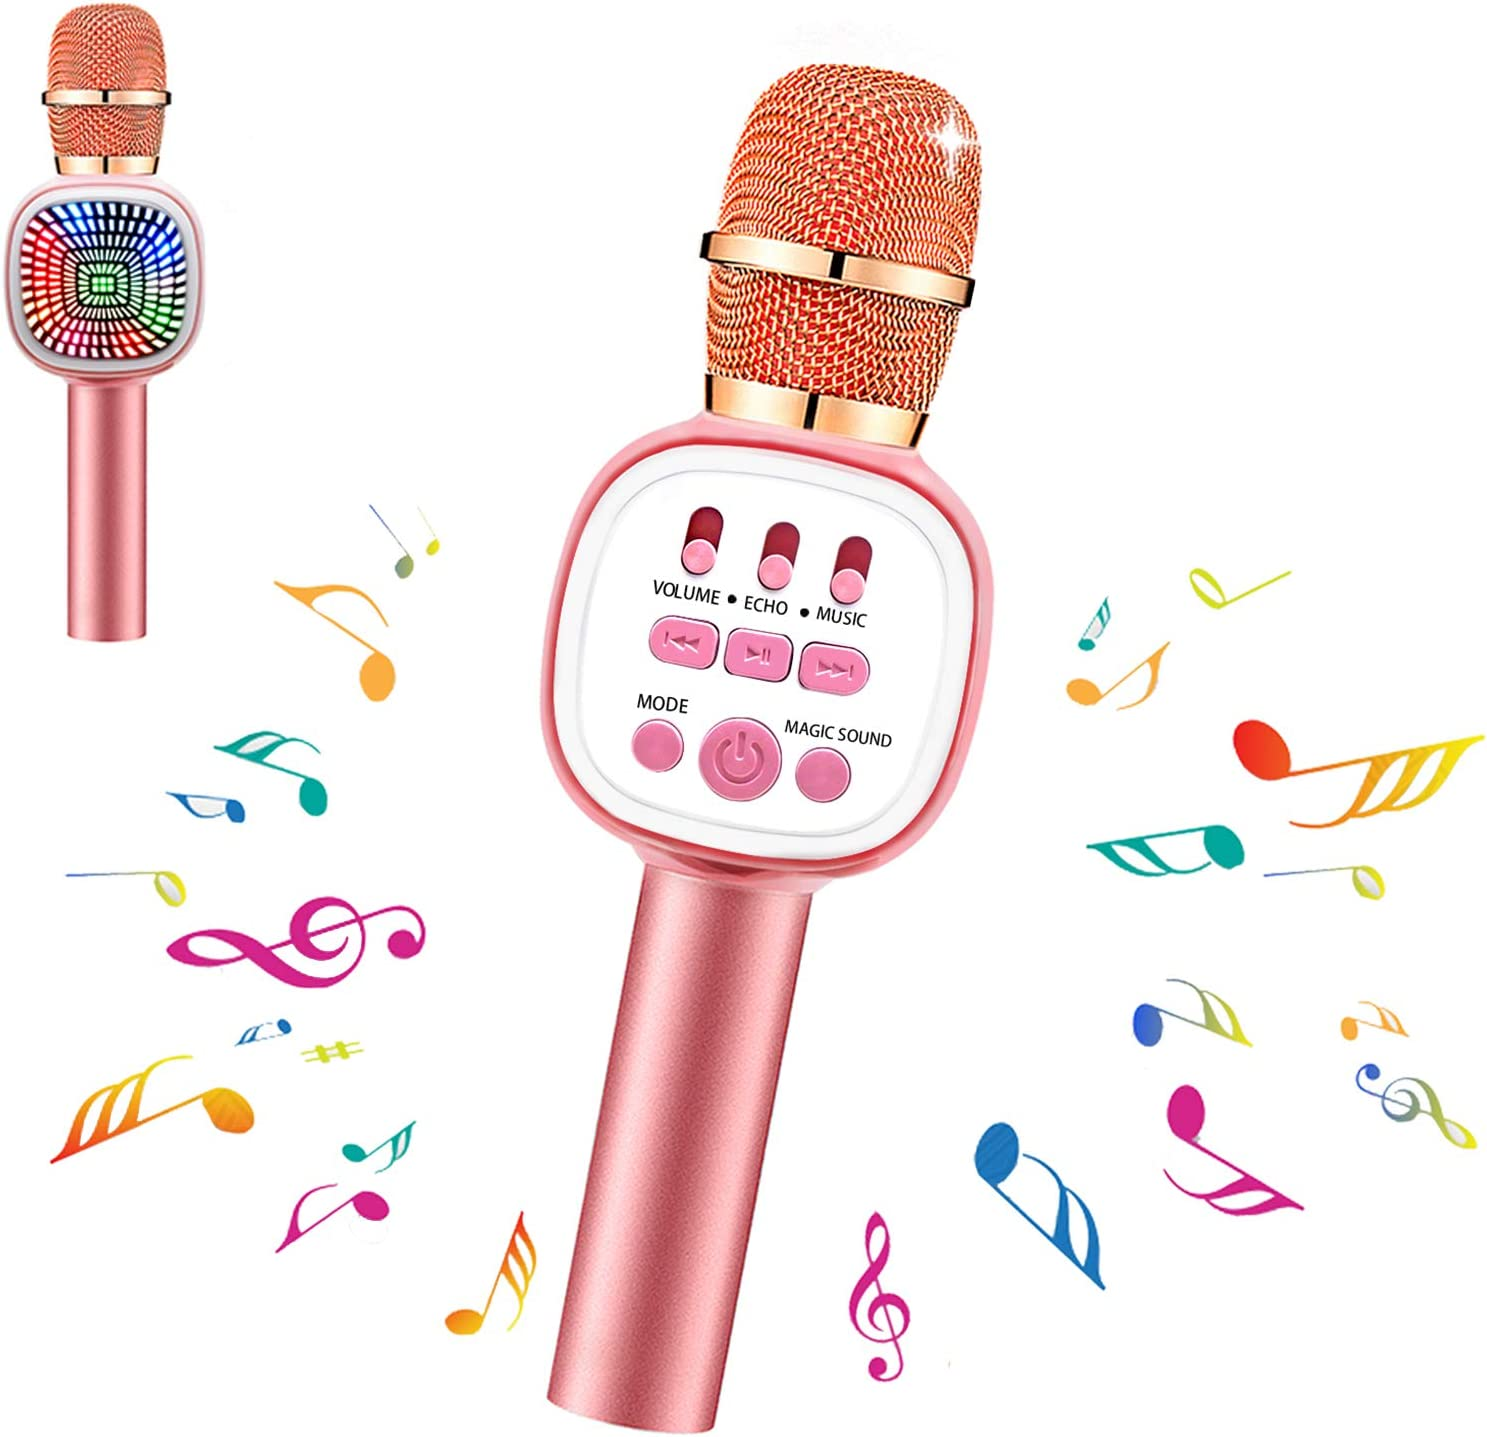 foneta Karaoke Microphone for Kids Wireless Bluetooth Microphone with LED Lights /& Voice Changer Portable Music Speaker Singing for Home Party Outdoor Gifts for Girls Boys Blue